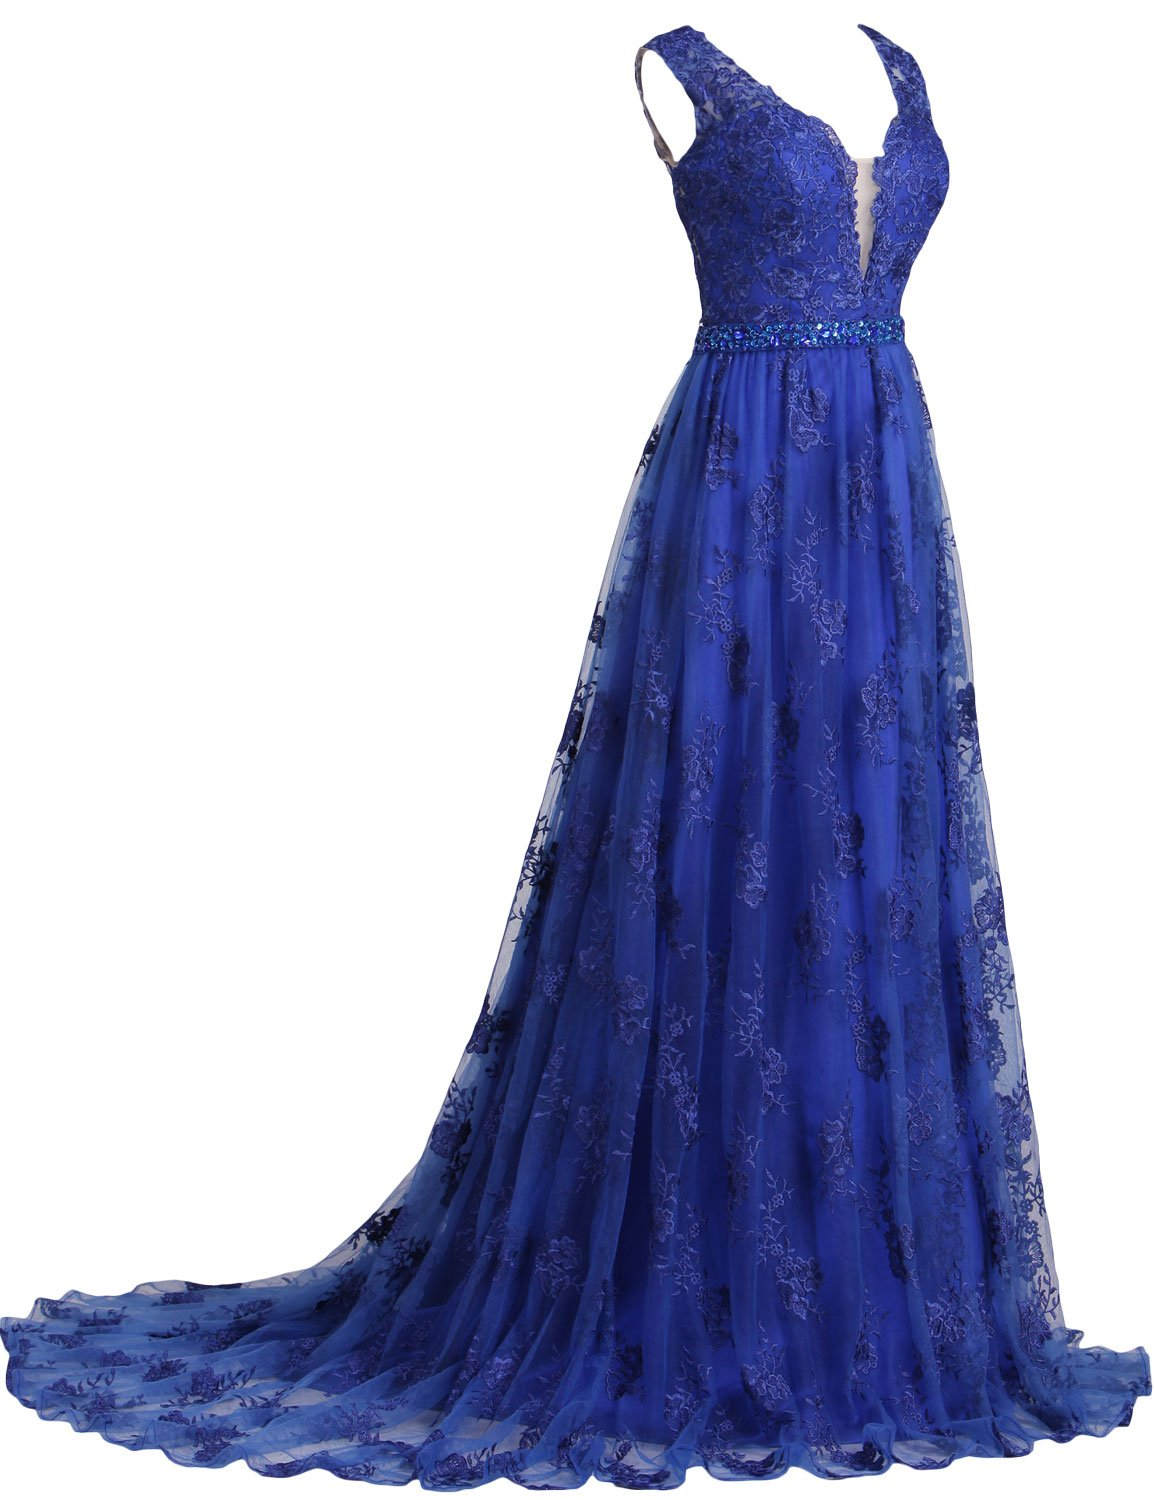 SeasonMall Womens Prom Dresses 2016 Lace V-Neck A Line Sleeveless Sweep Train With Beading Dress Size 0 Dark Royal Blue by SeasonMall (Image #4)